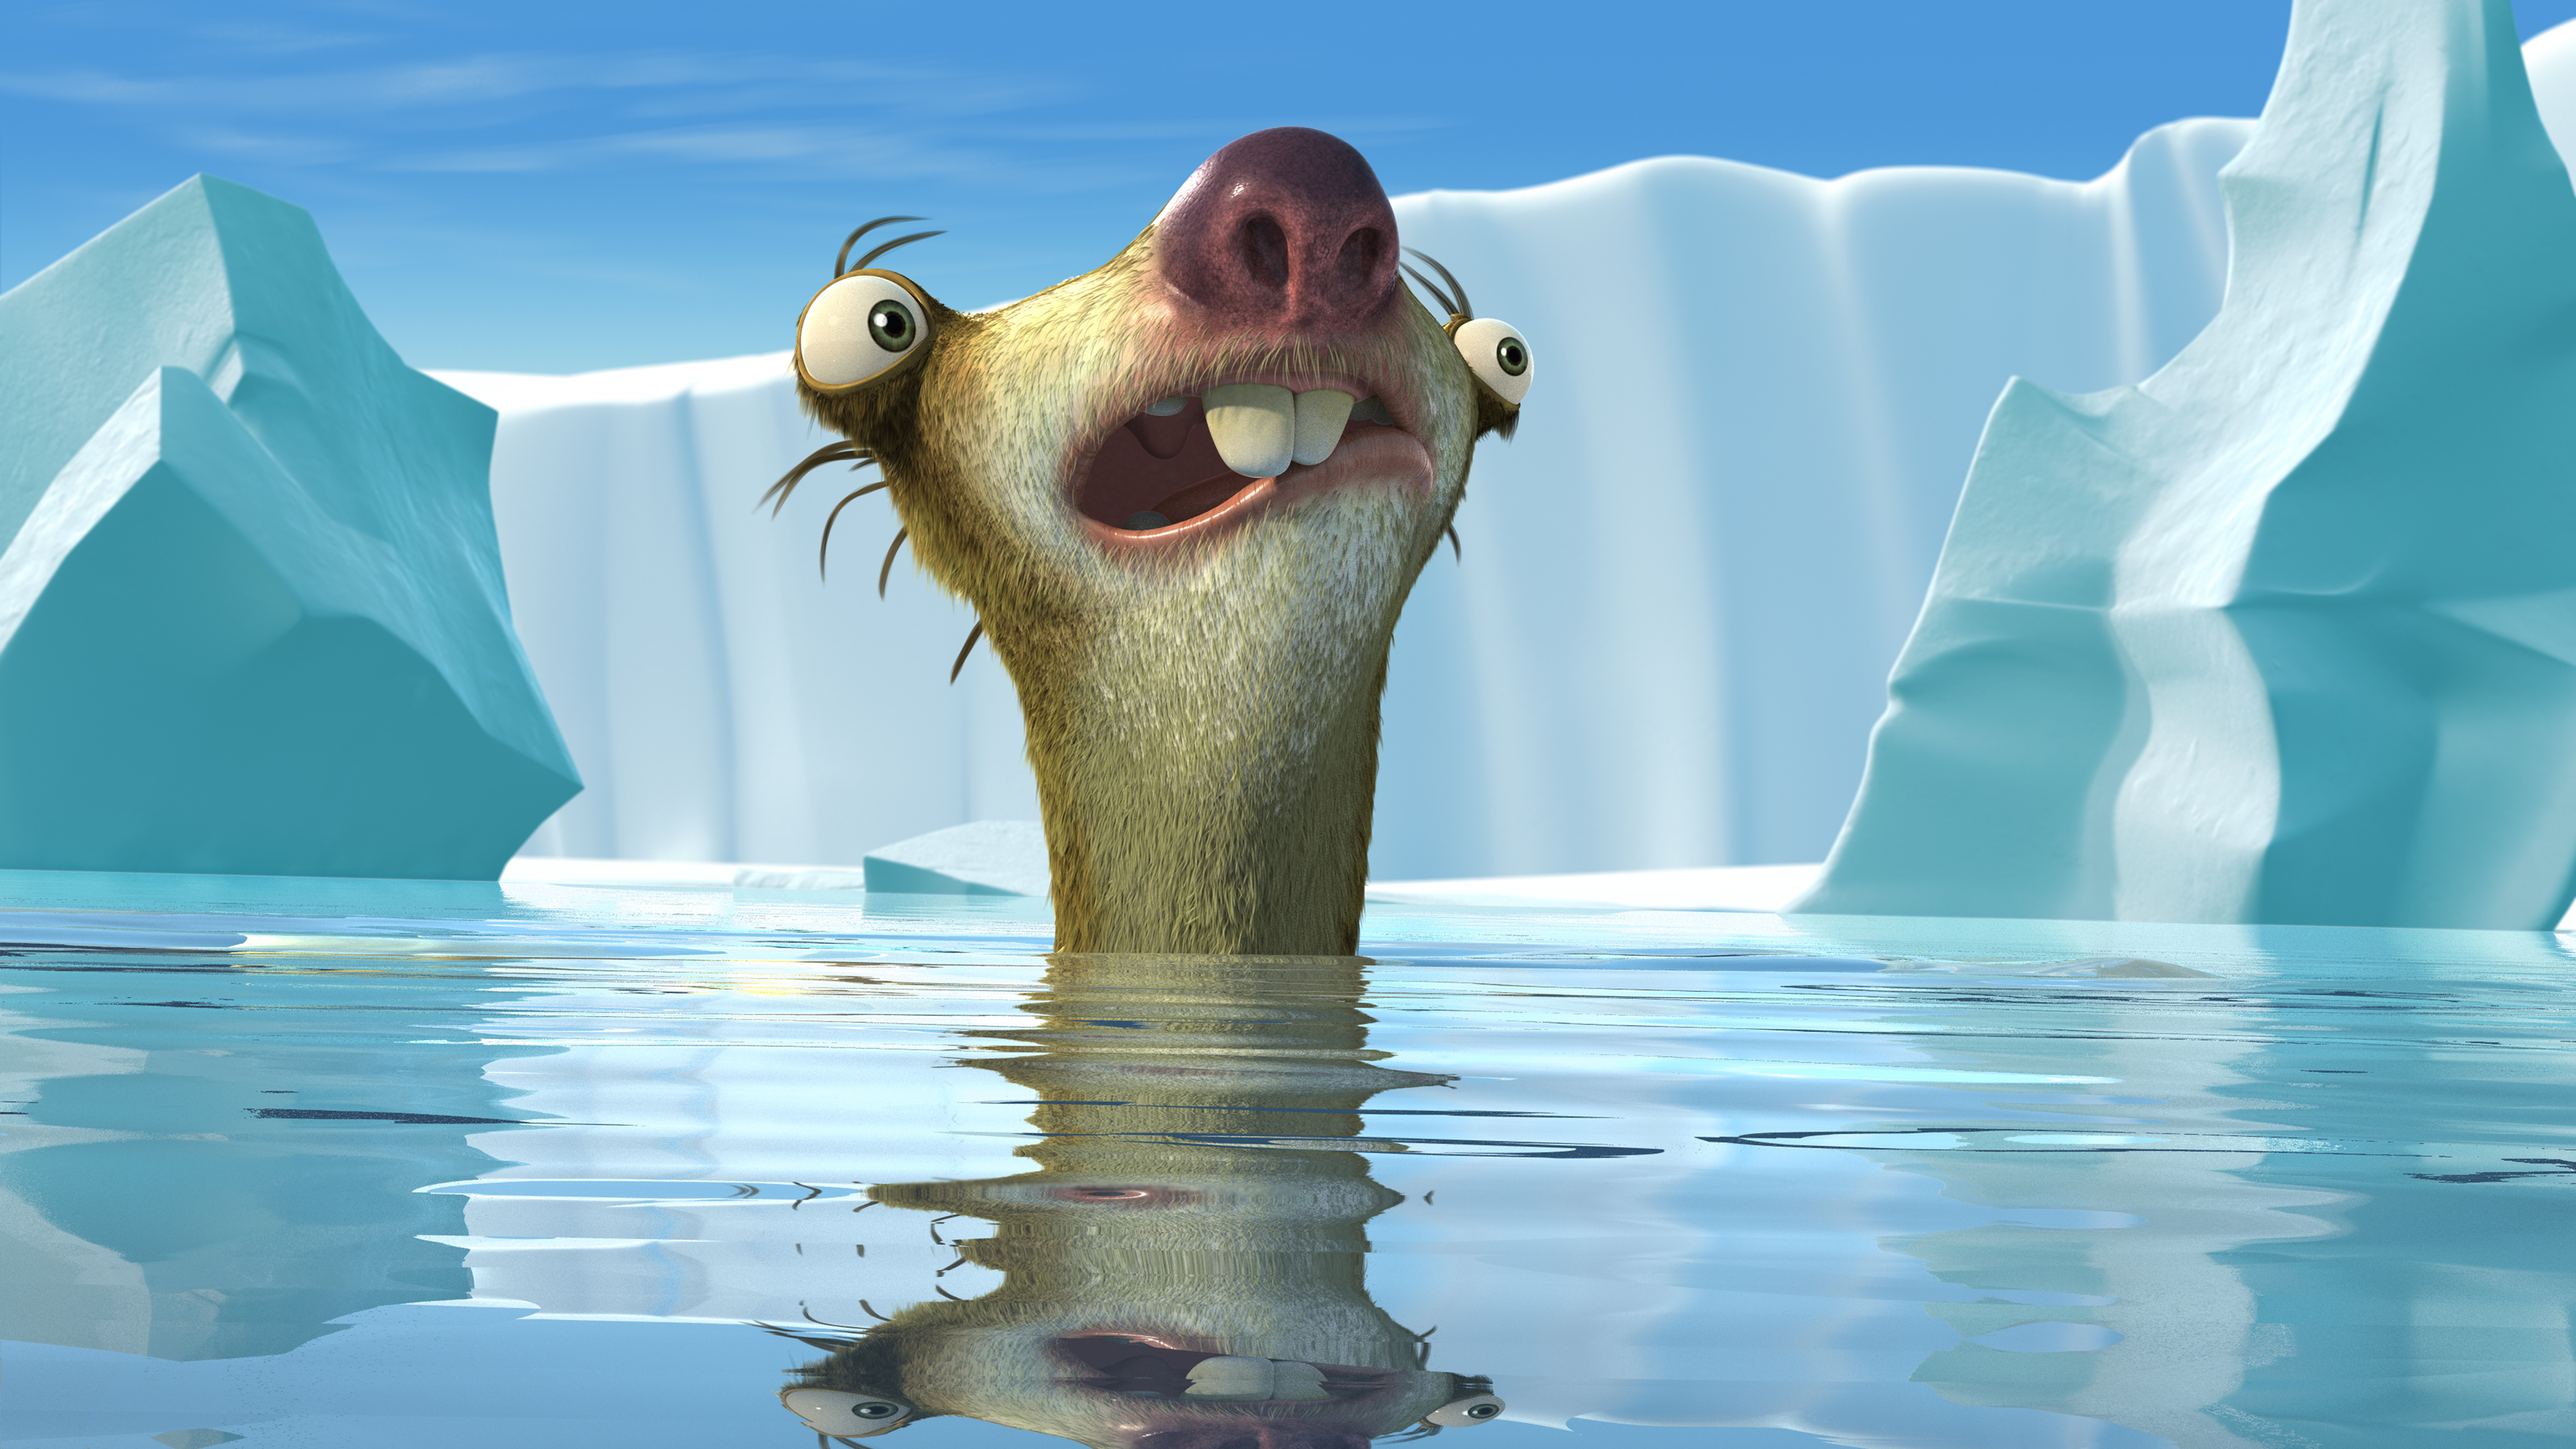 ice age download - HD 2048×1152